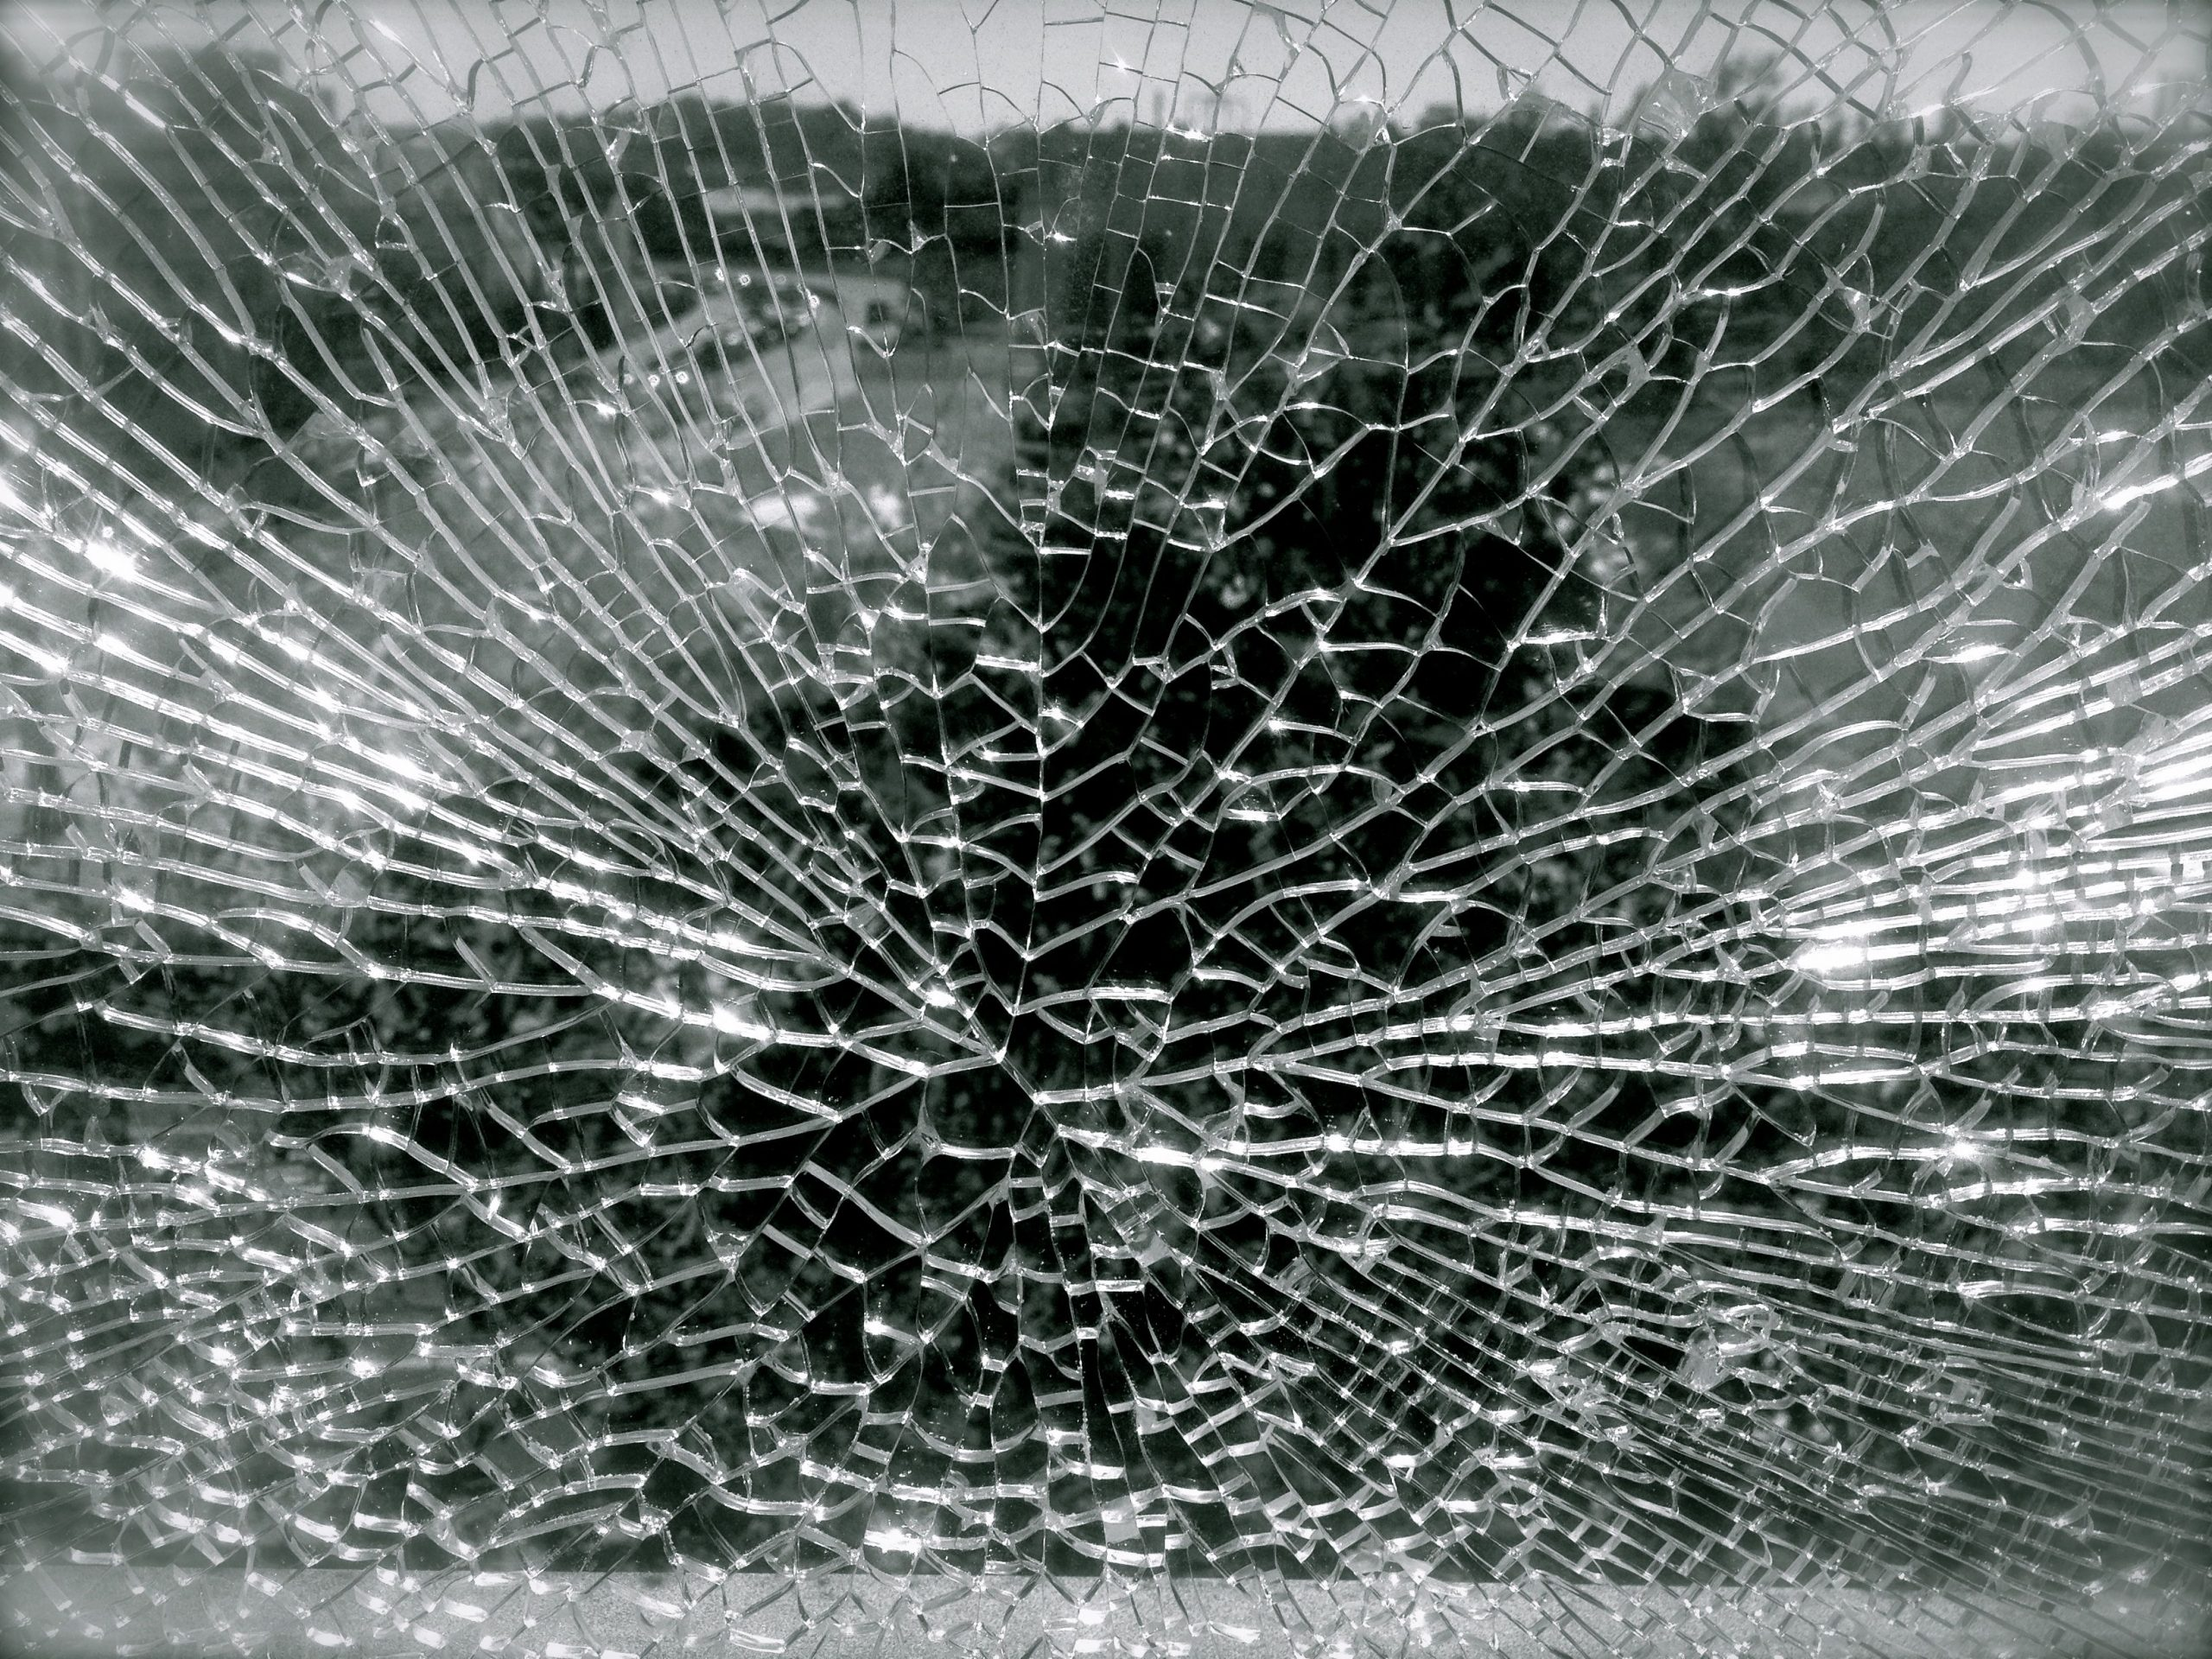 Broken window, from Flickr by Lynn Friedmann